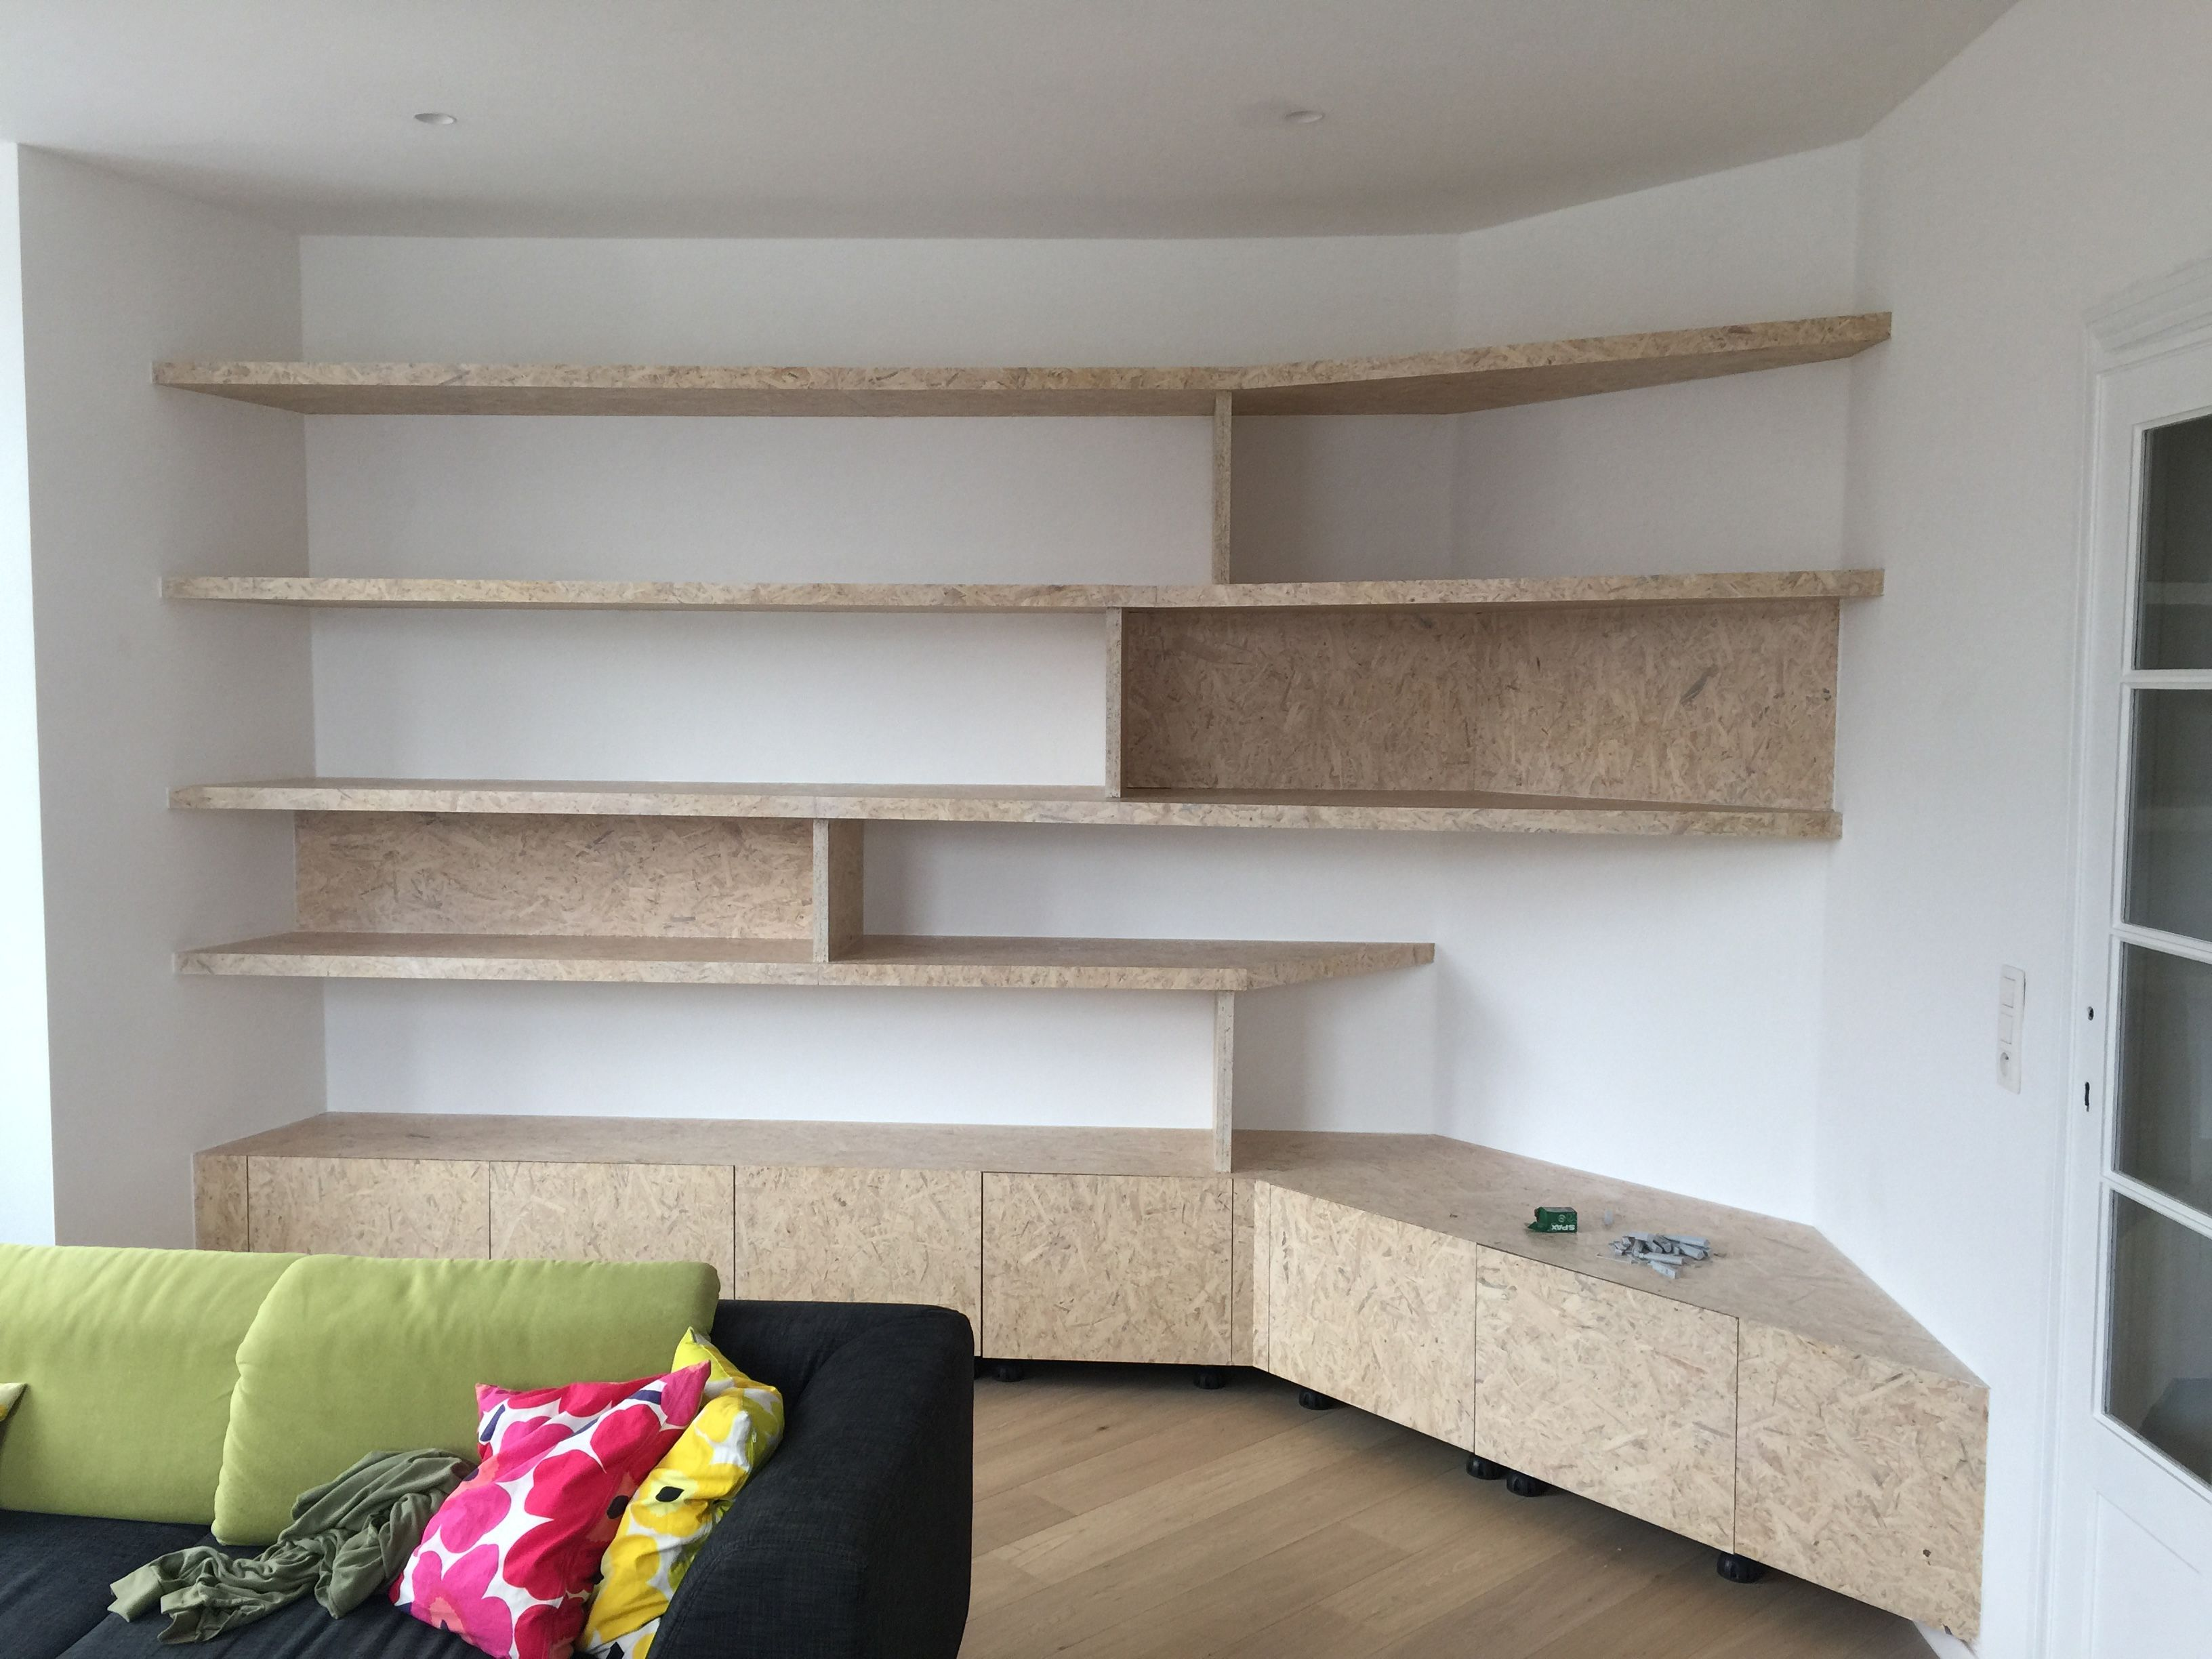 Biblioth Que Coin Tv Osb Blanchi Degroux Etterbeek Pinterest  # Bibliotheque Vitree Avec Tv Cachee